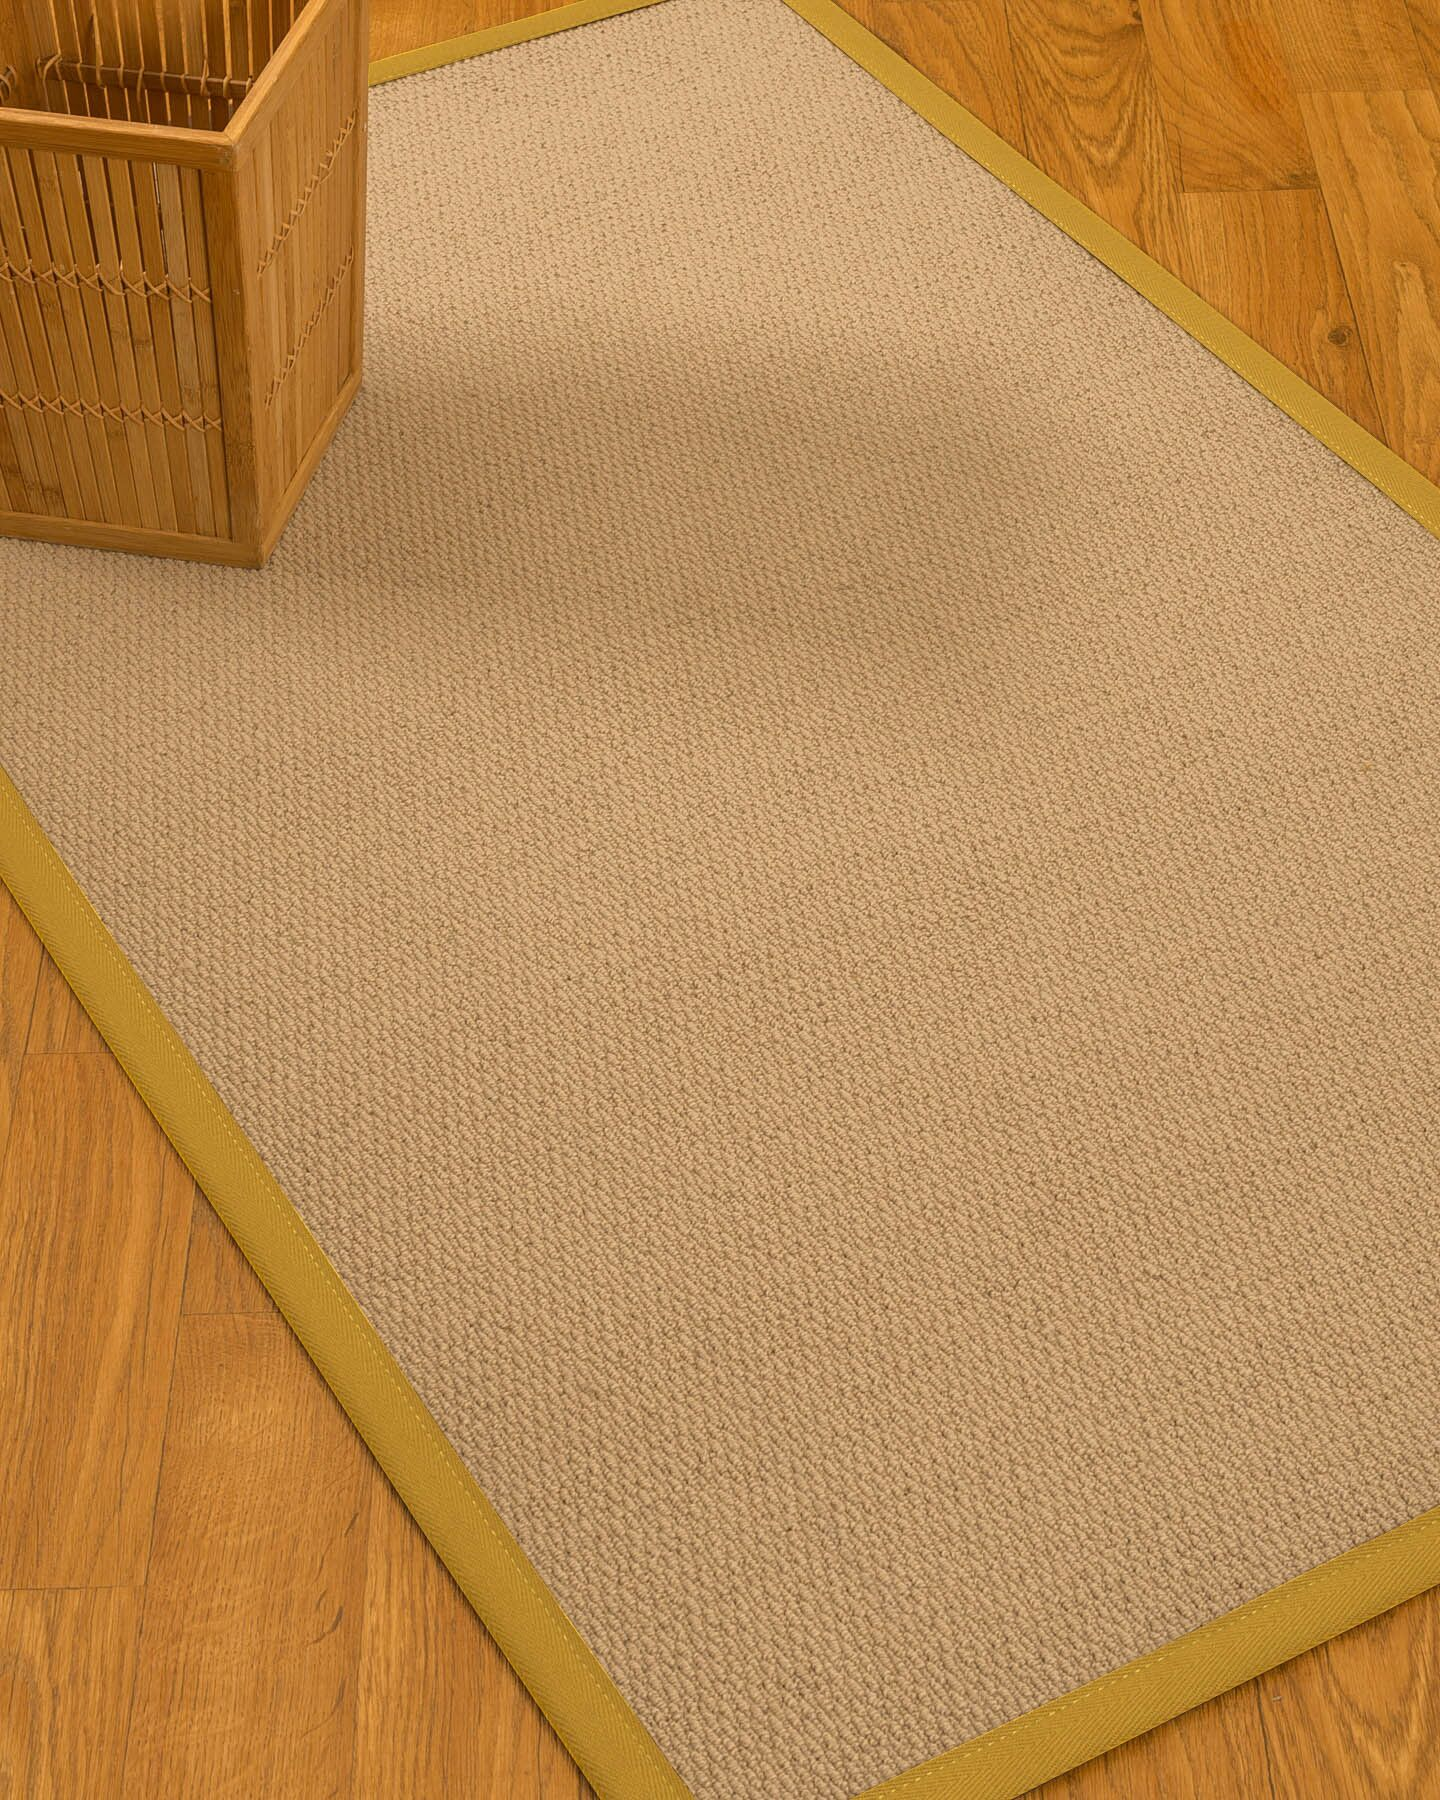 Chea Border Hand-Woven Wool Beige/Tan Area Rug Rug Size: Rectangle 6' x 9', Rug Pad Included: Yes